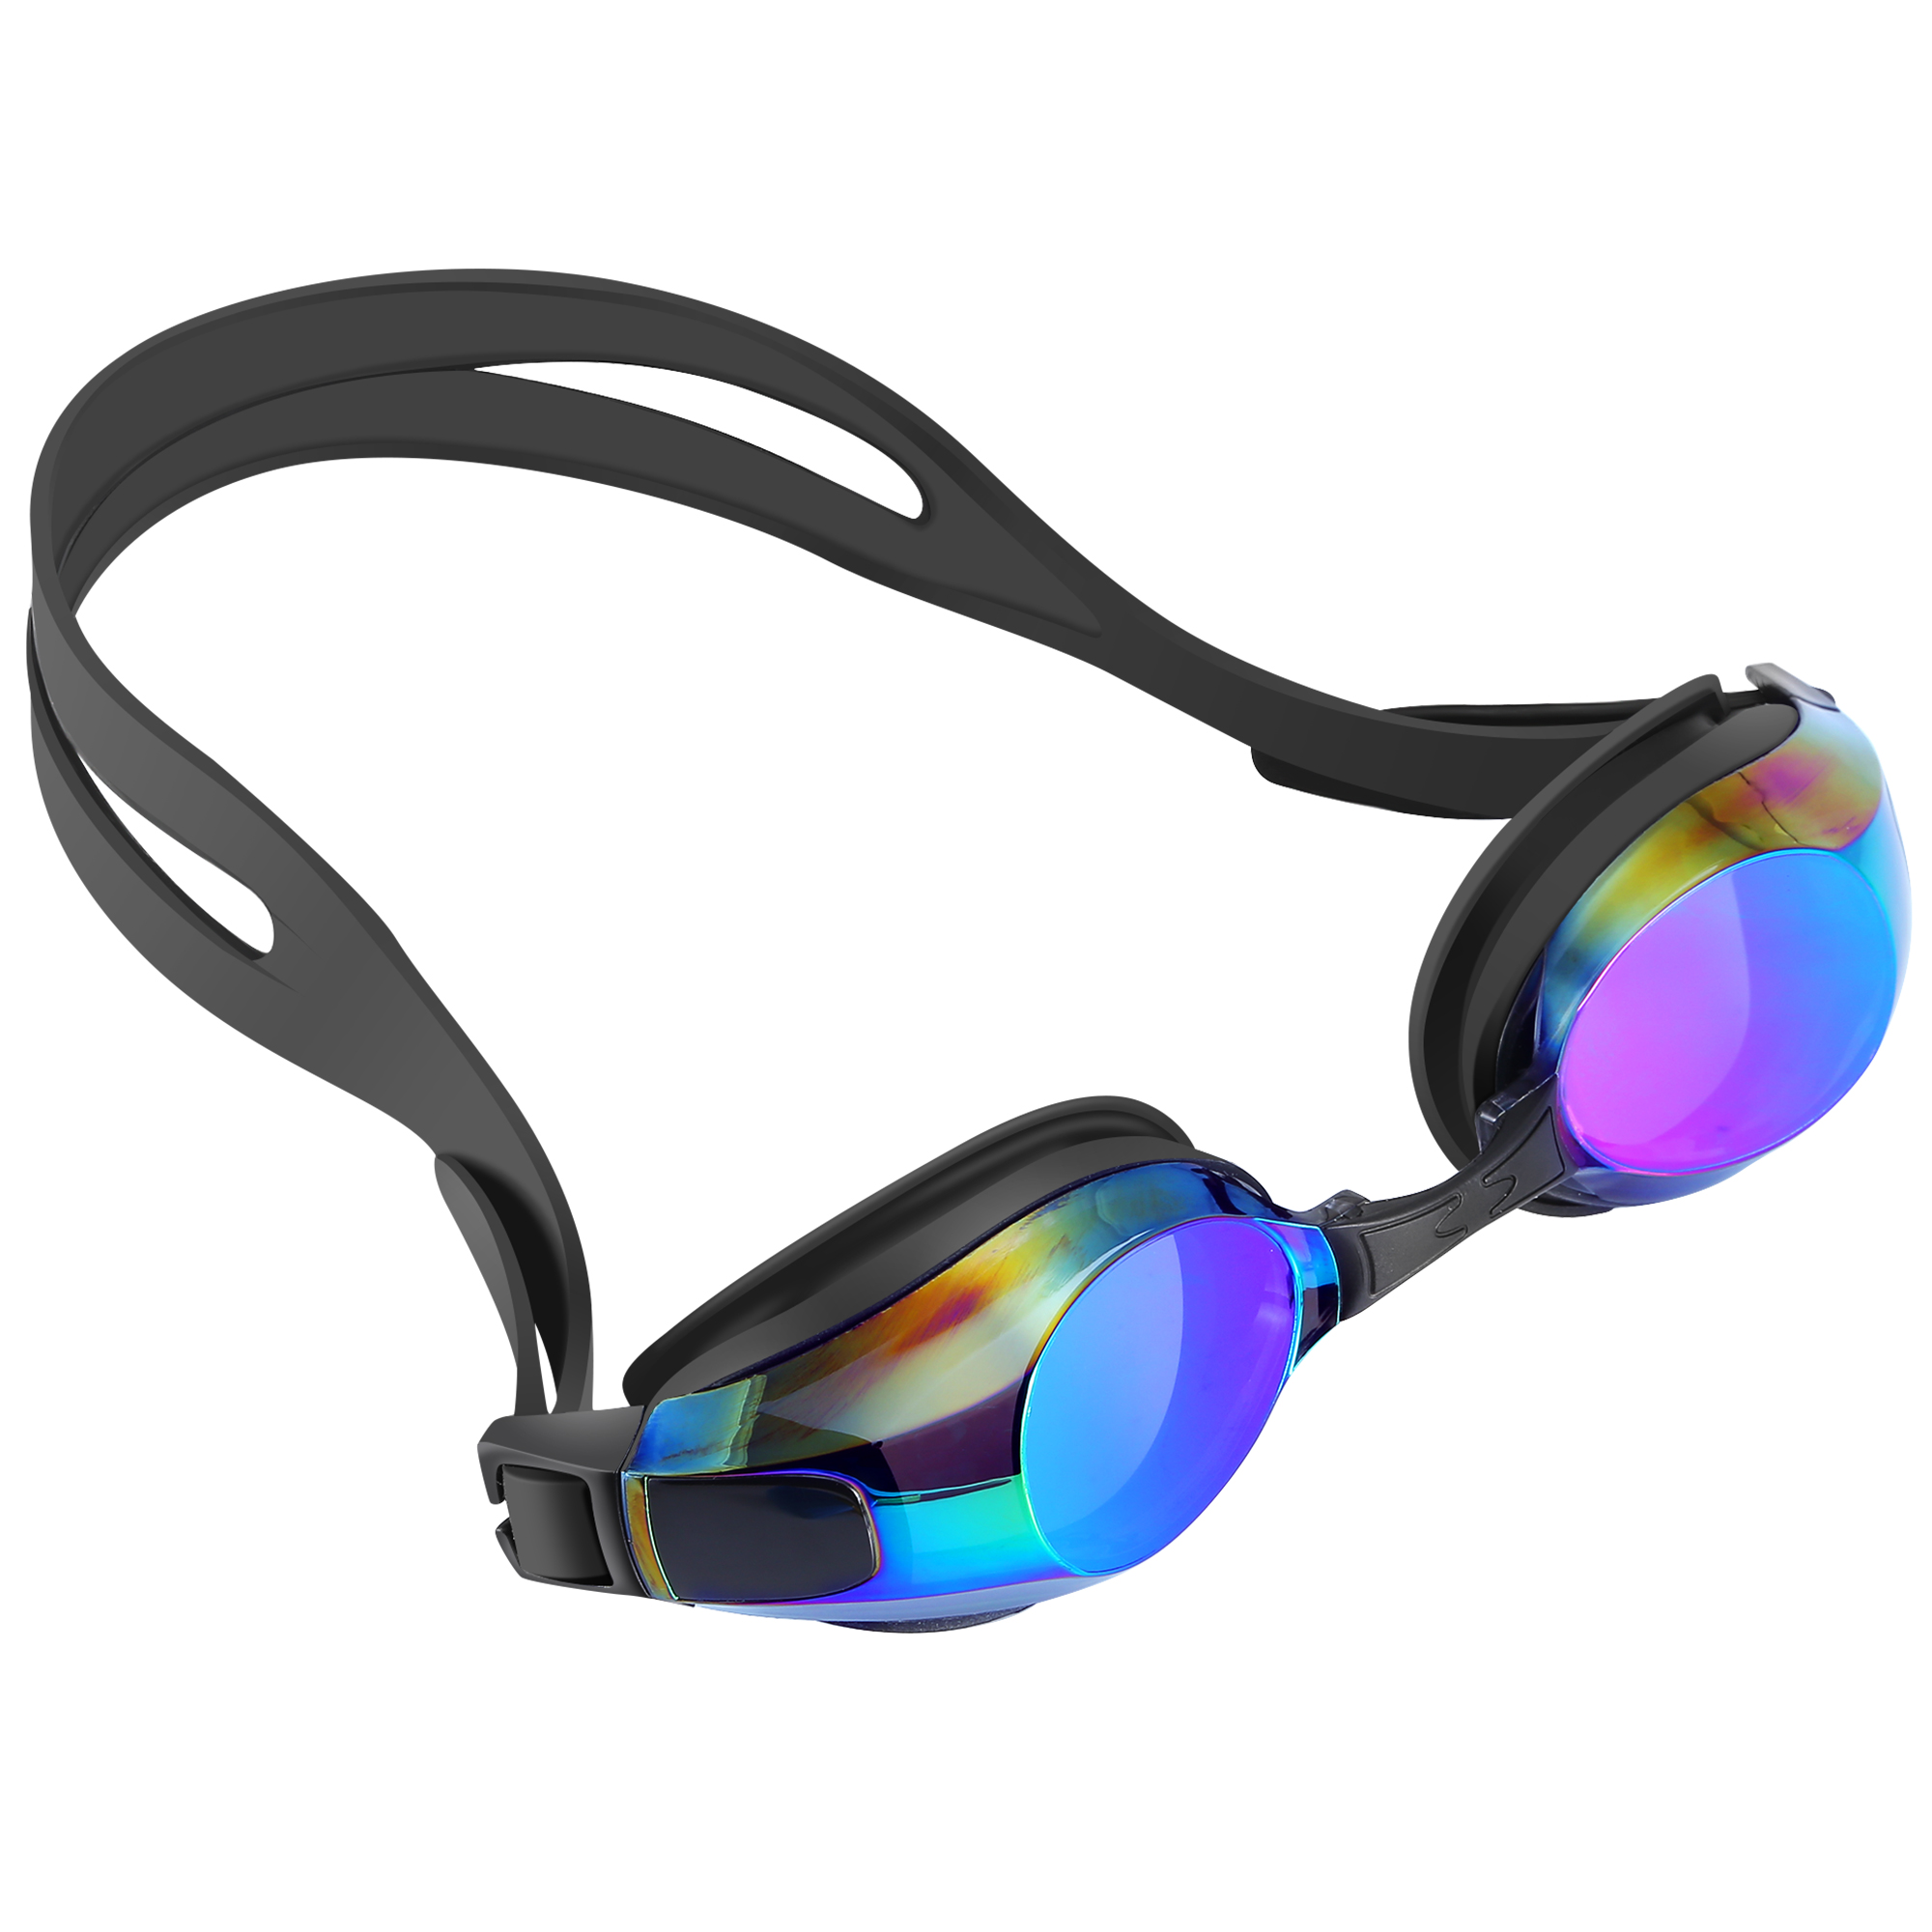 IPOW Anti-fog Swimming Goggles No Leaking Water Swim Goggle Glasses for Adult Youth Kids-Black by IPOW